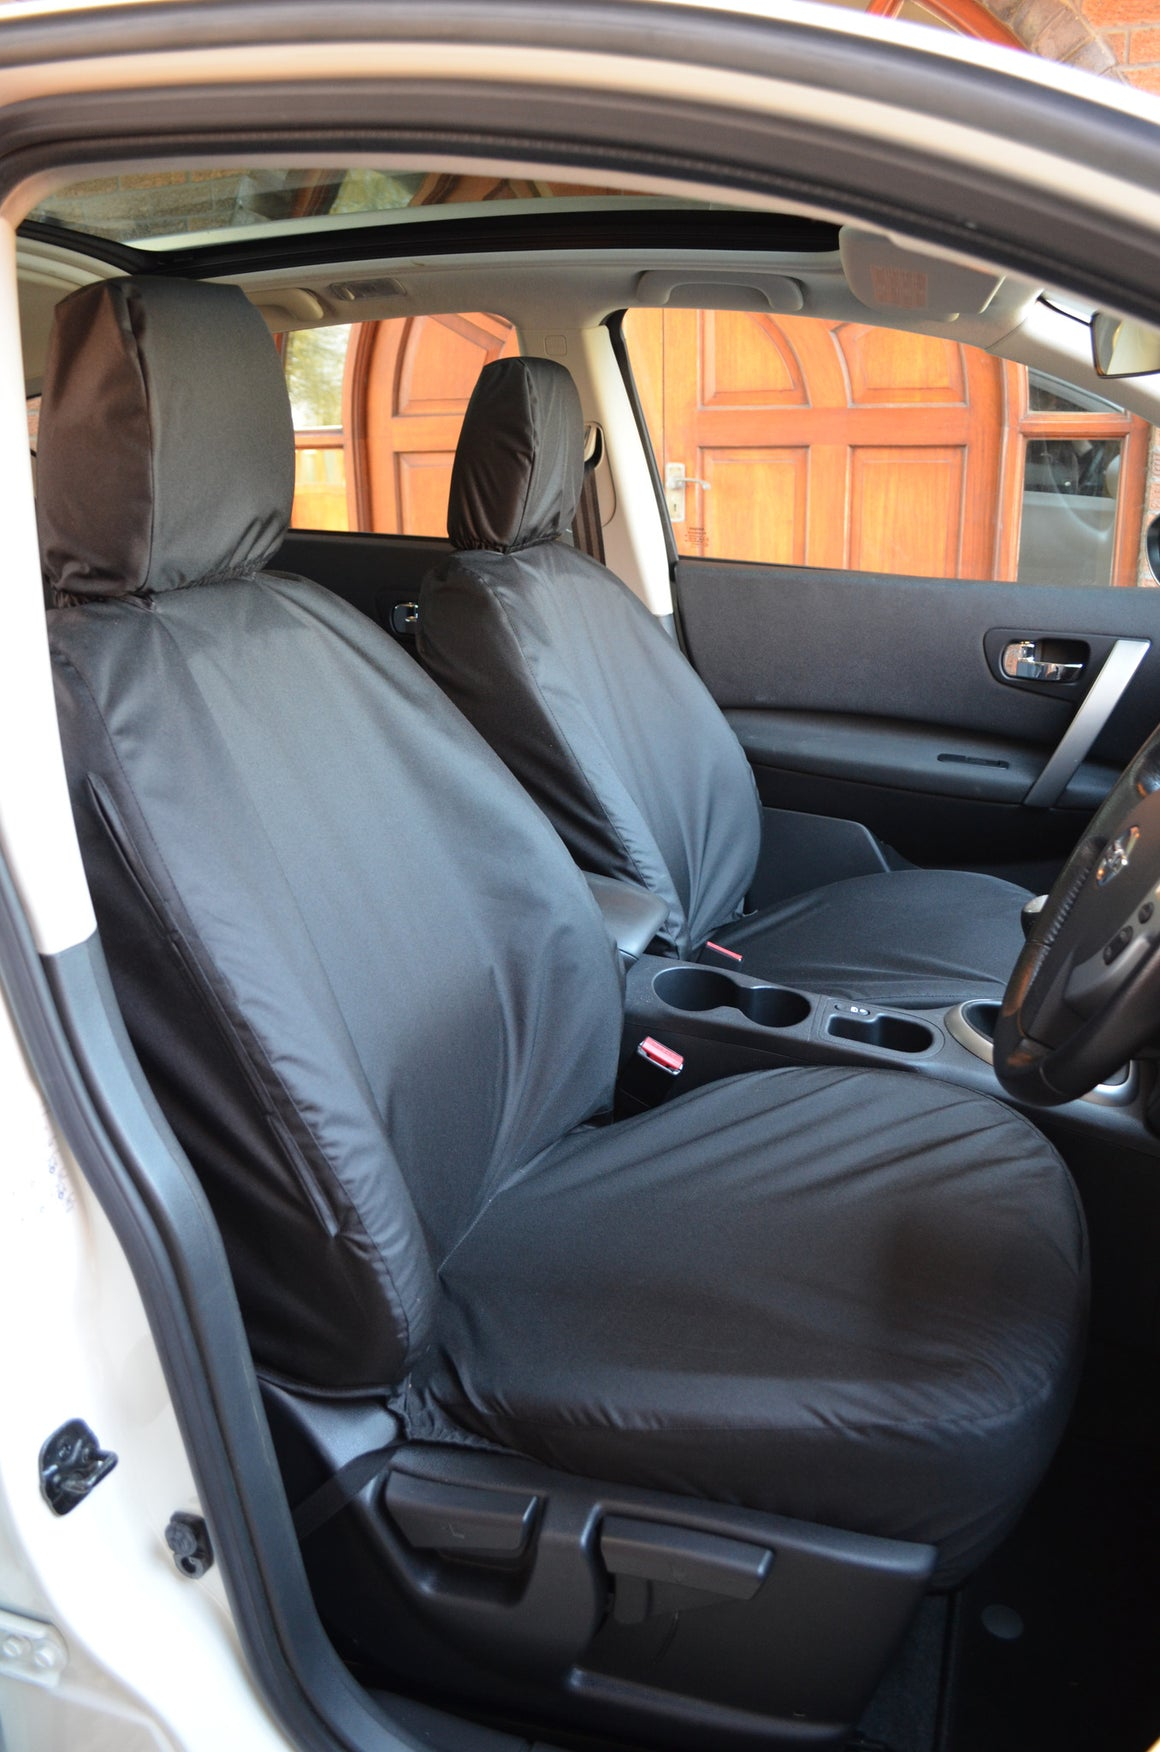 Nissan Qashqai 2007 - 2013 Tailored Seat Covers